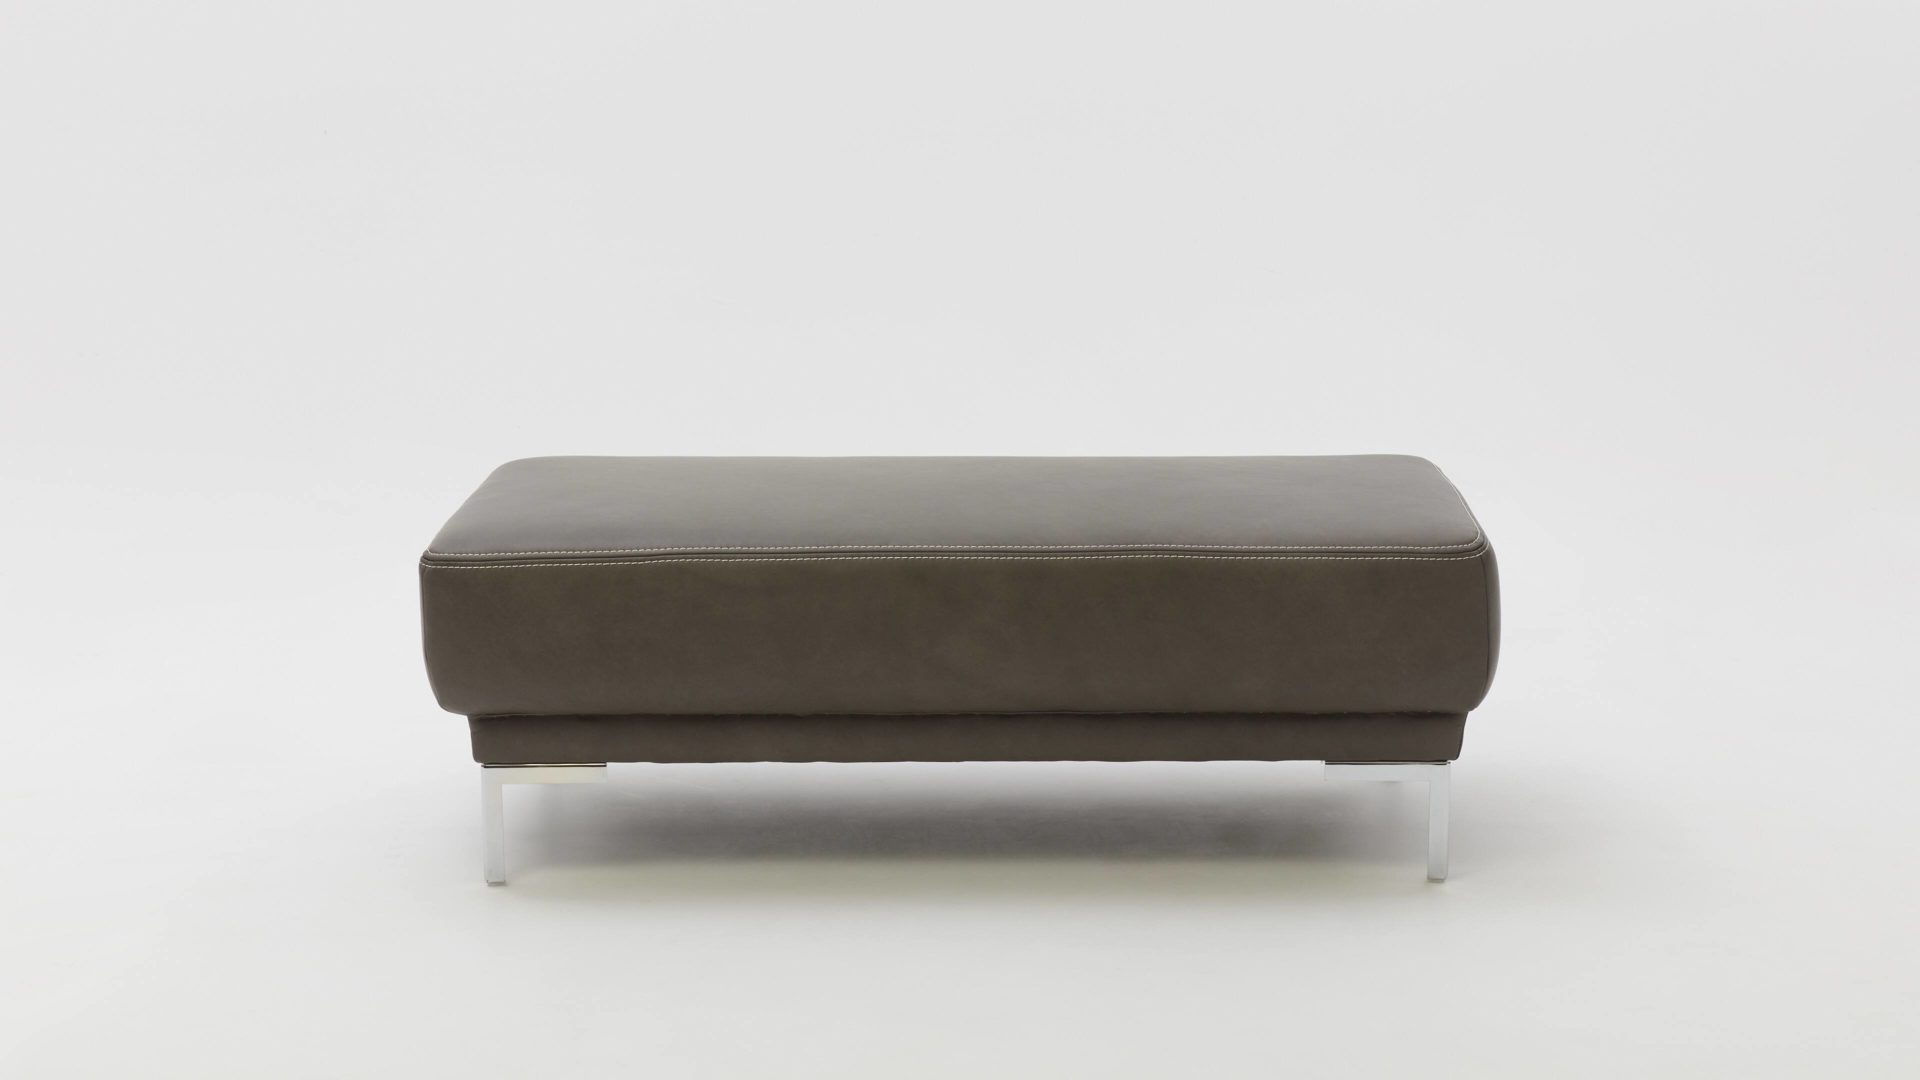 Polsterhocker Chrom Interliving Sofa Serie 4251 Xxl Polsterhocker Dunkelgraues